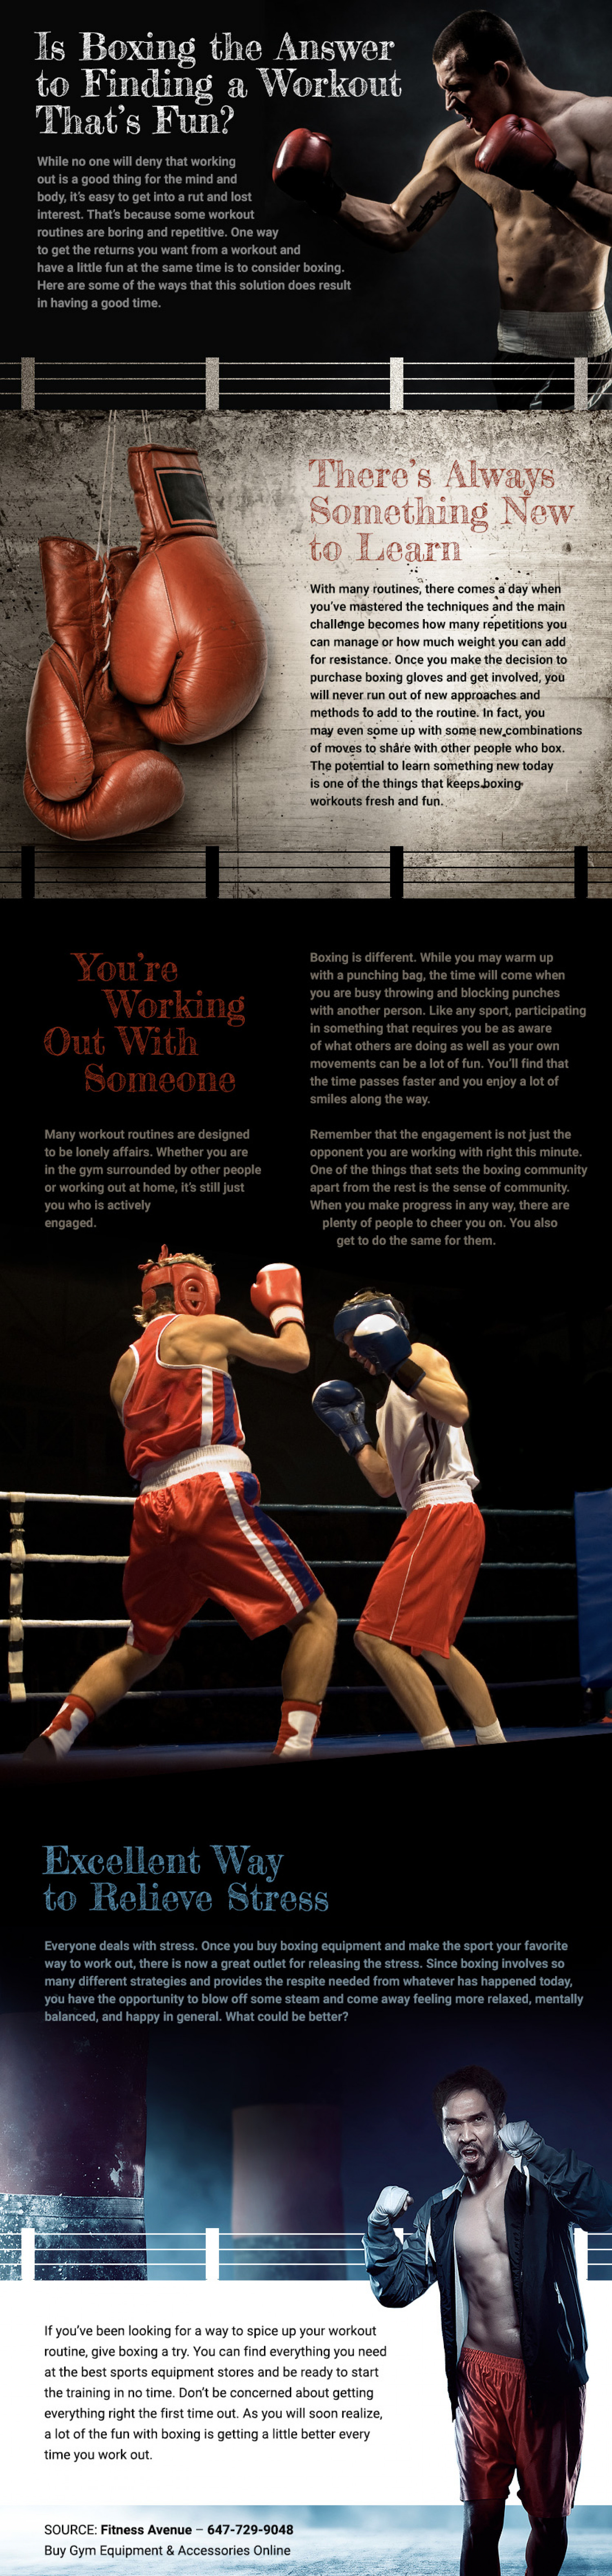 Is Boxing the Answer to Finding a Workout That's Fun? Infographic